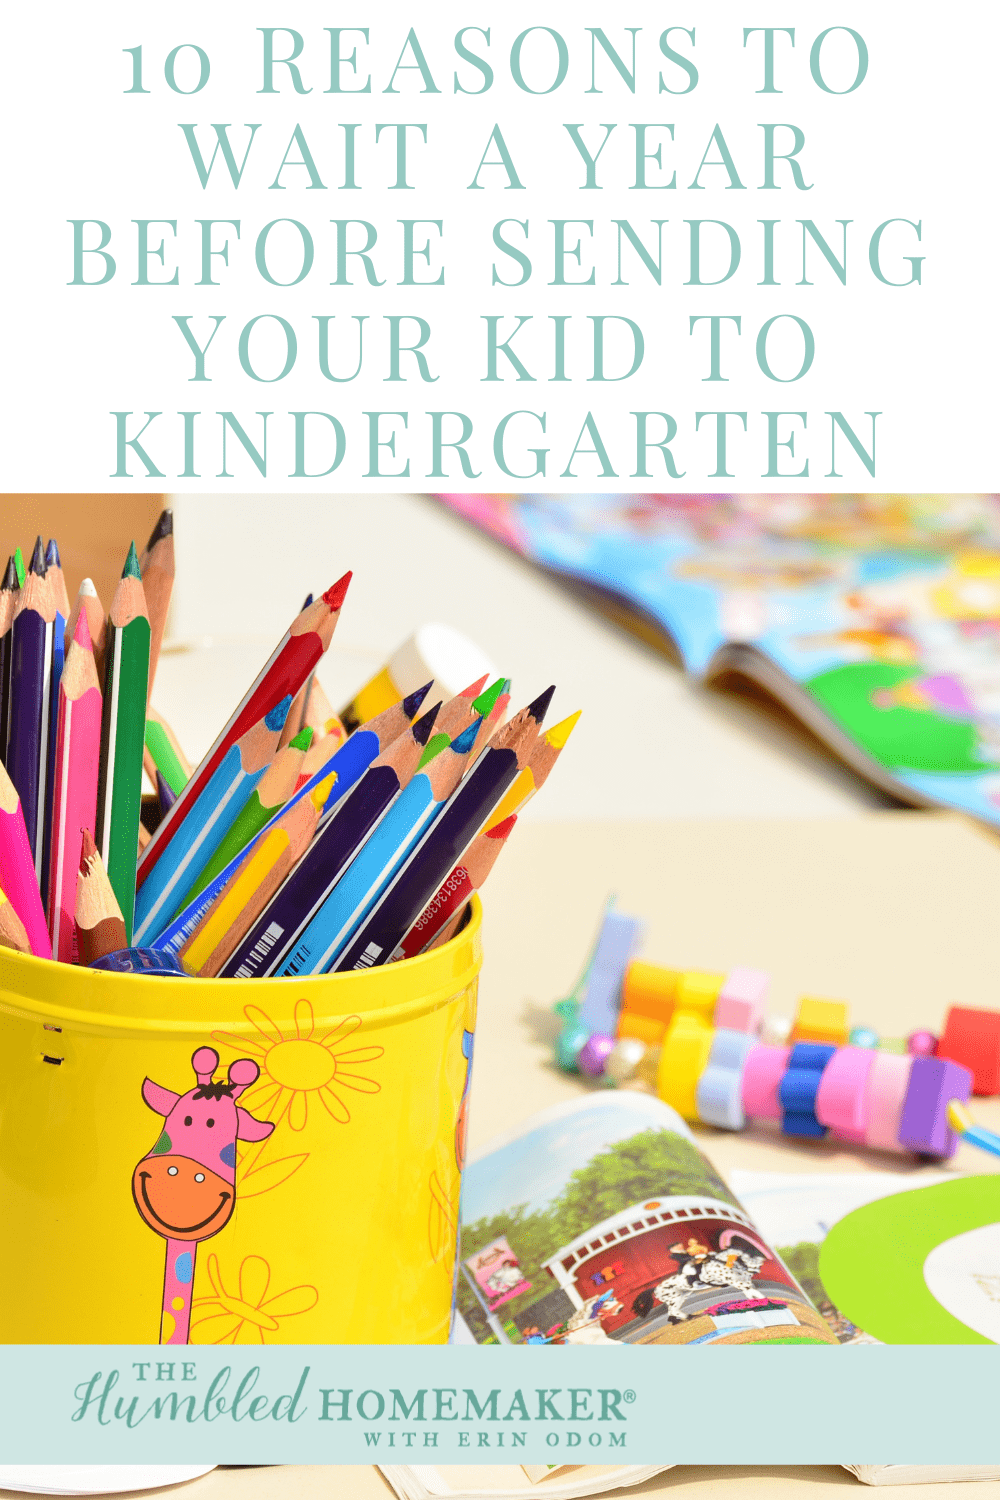 I'm excited to share our family's reasons for why we're not sending our 5 year old to kindergarten, and I'd love for you to also read Lexie's story of how her family chose the opposite--to send their almost-5 year old to kindergarten!